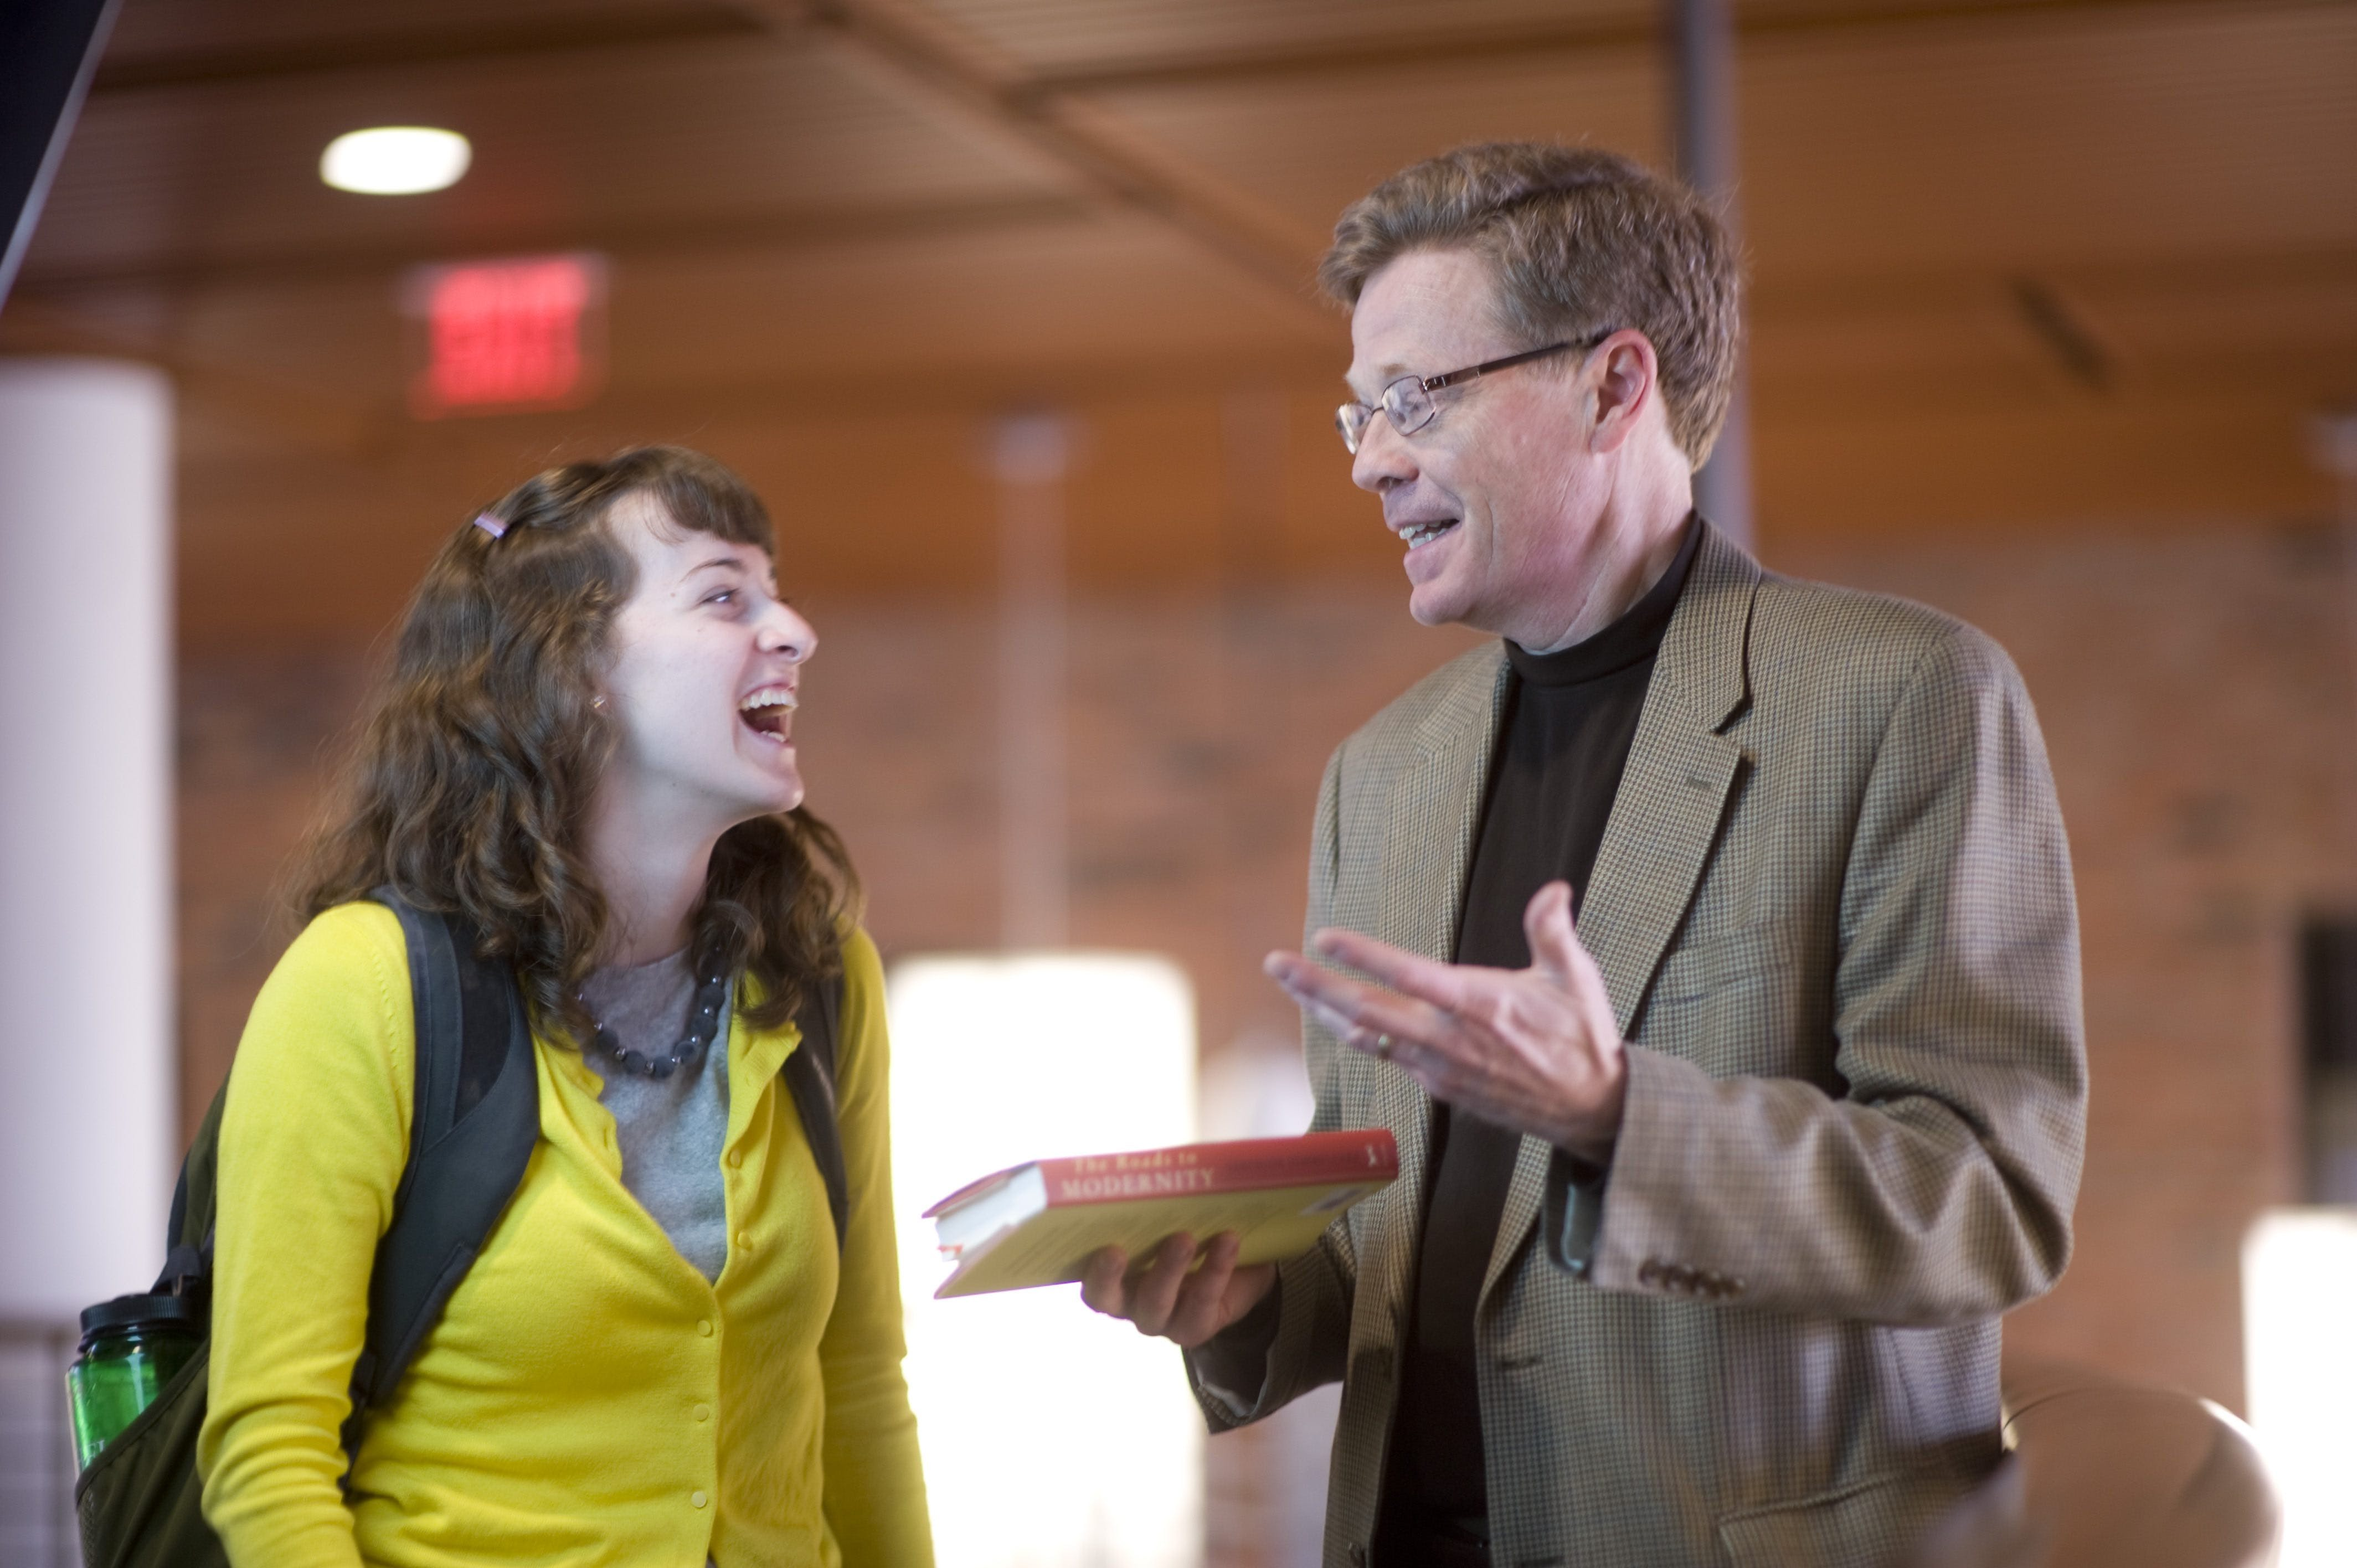 A Bethel student interacts with a professor between classes.